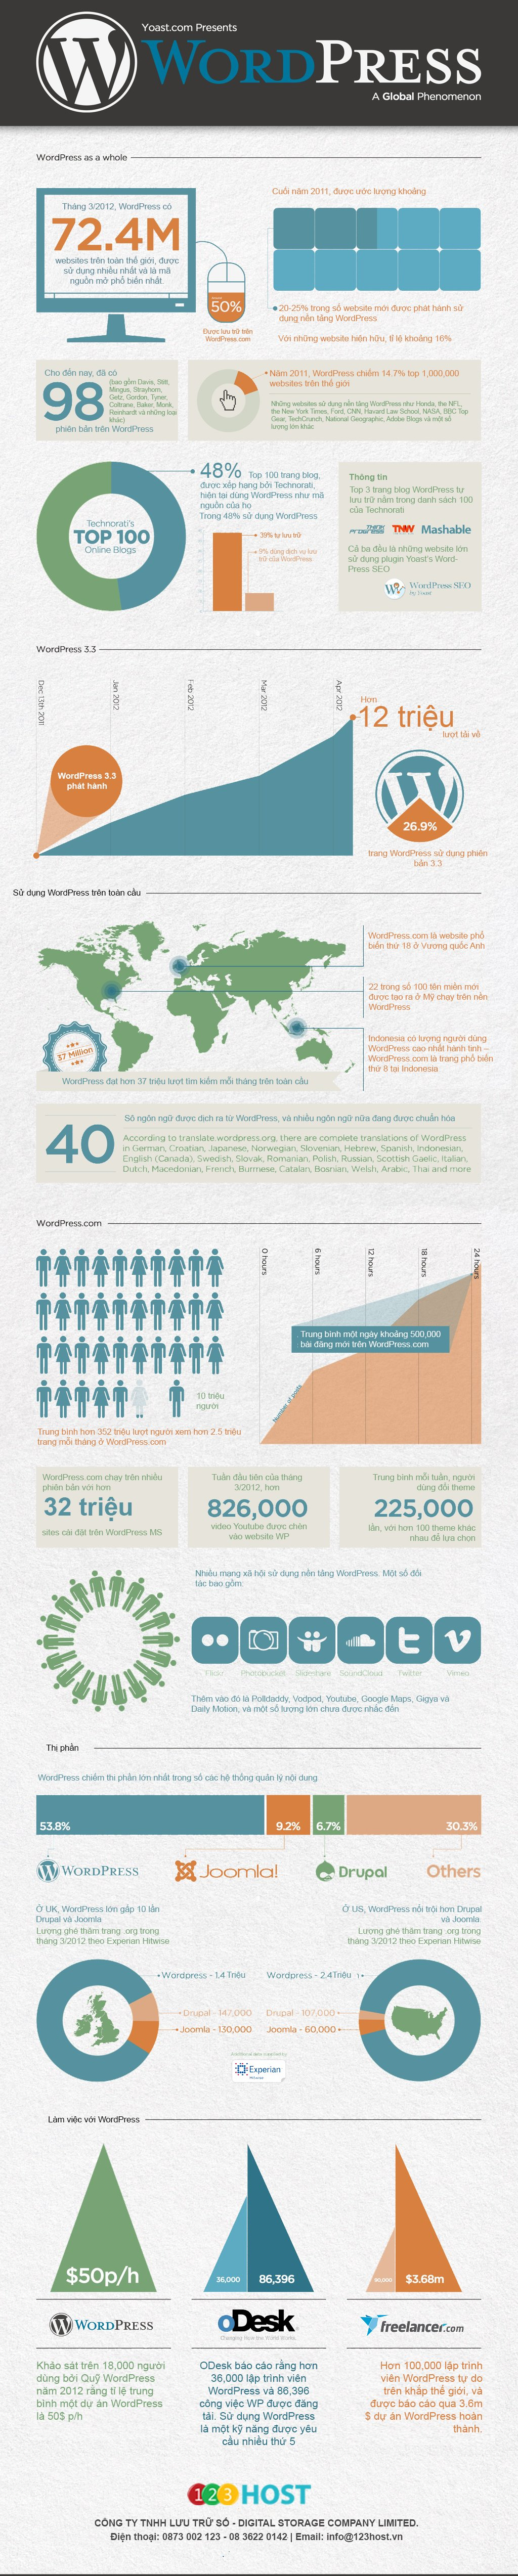 20-6 wordpress-stats-infographic-yoast-full_viet